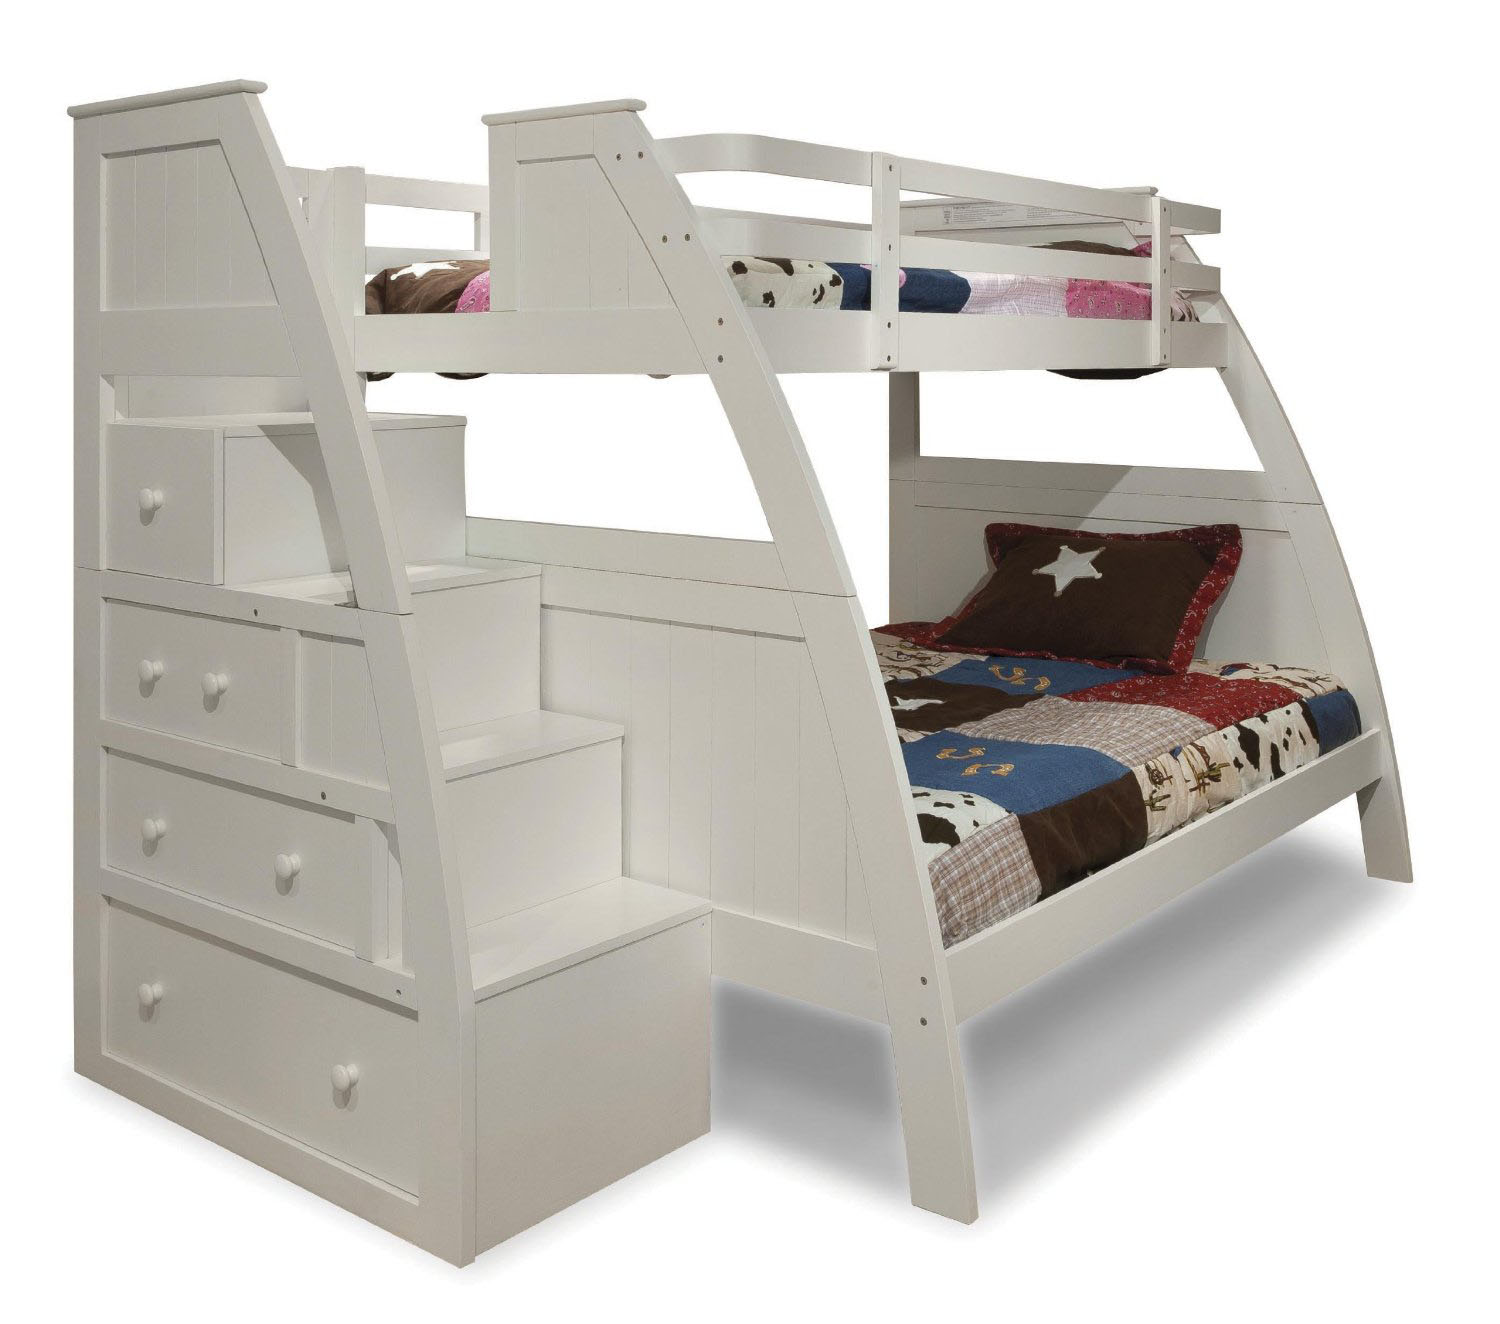 ... Neutron Bunk Bed With Stair Storage White from our Storage Beds